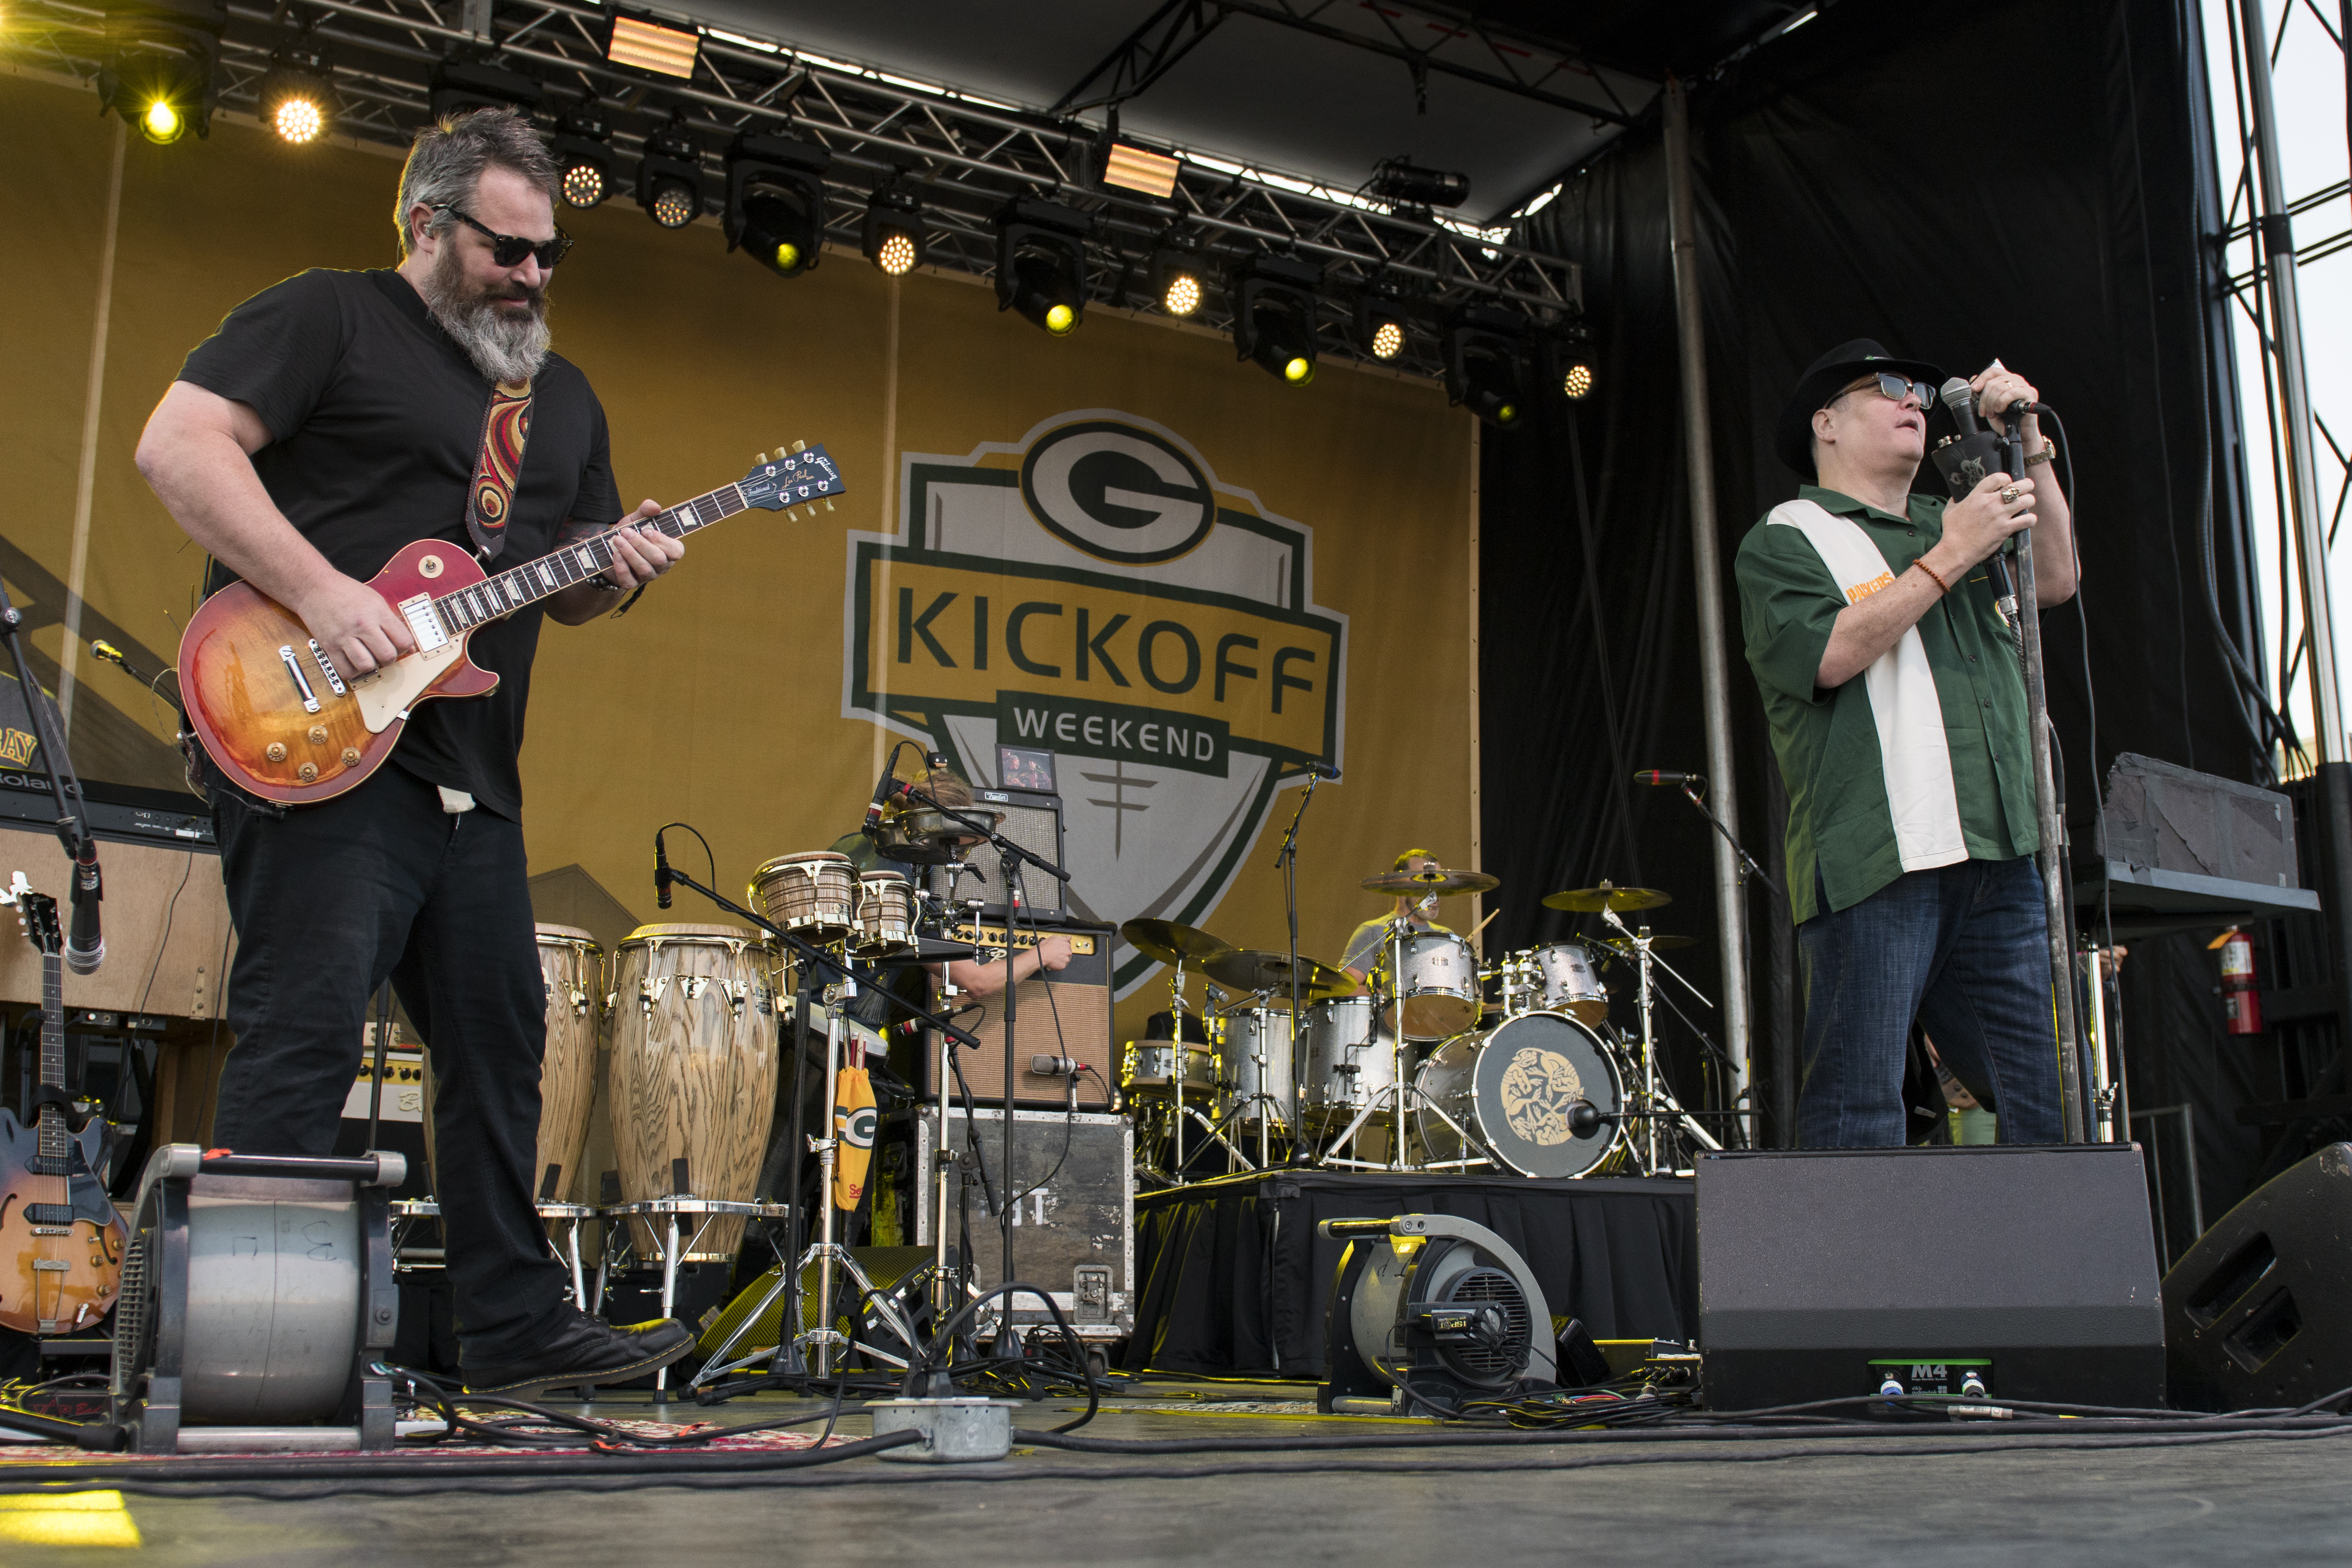 s Packers Kickoff Concert at Lambeau Field on 9 9 17